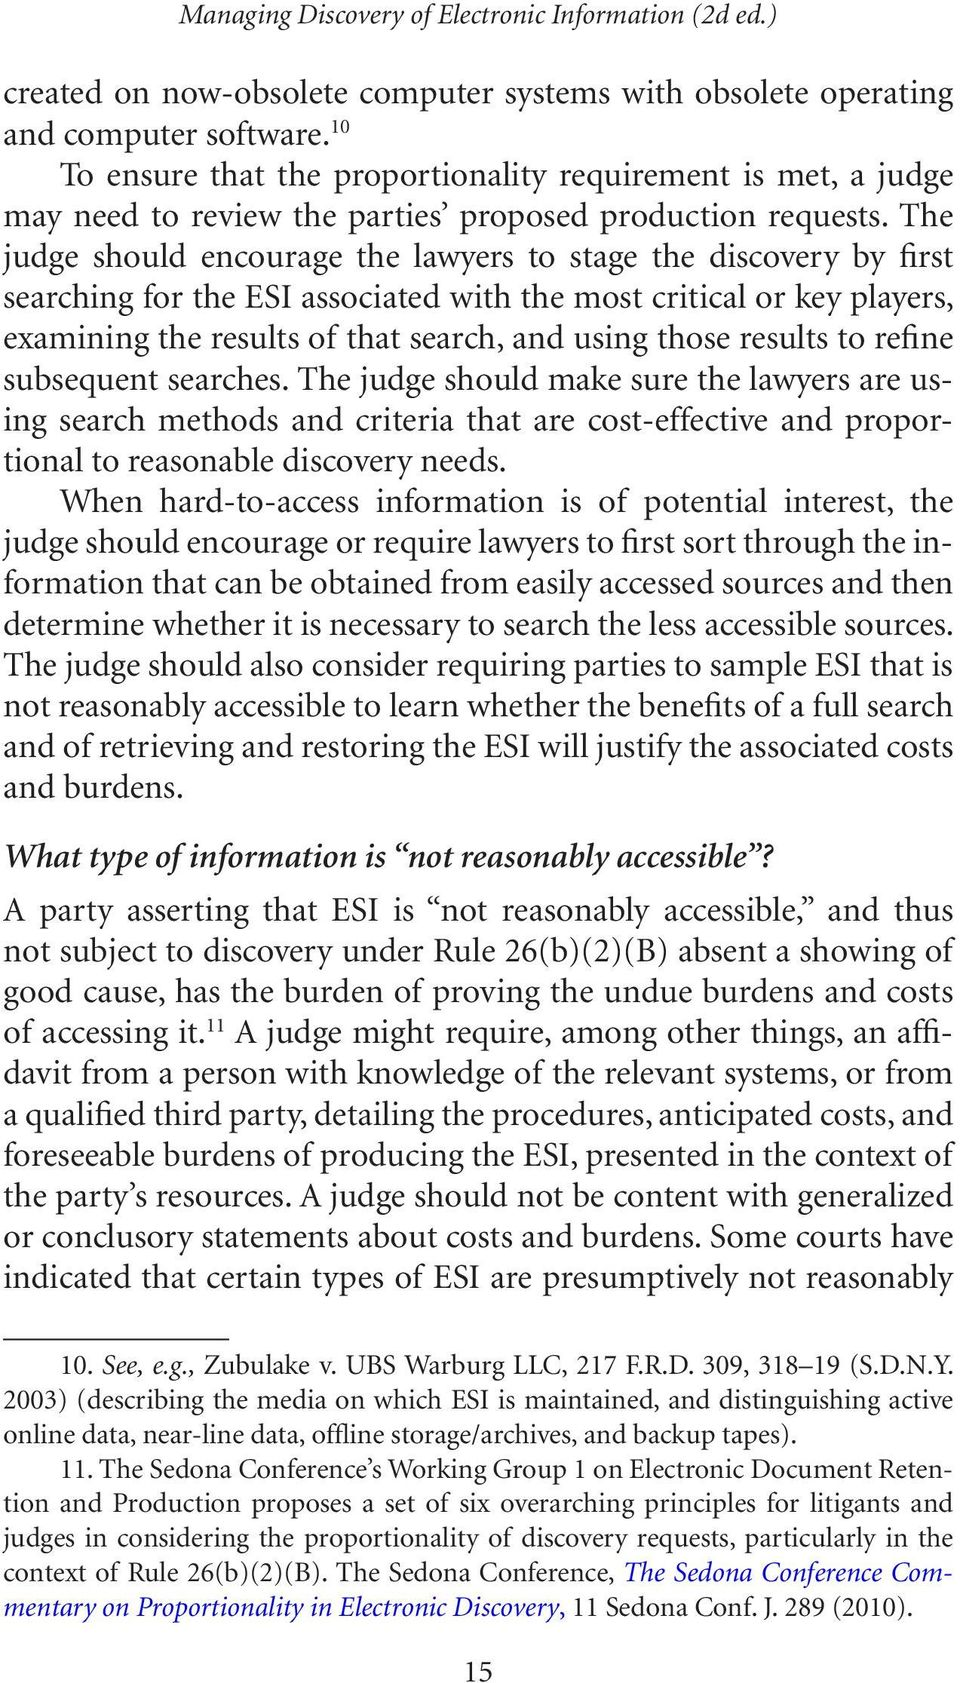 The judge should encourage the lawyers to stage the discovery by first searching for the ESI associated with the most critical or key players, examining the results of that search, and using those